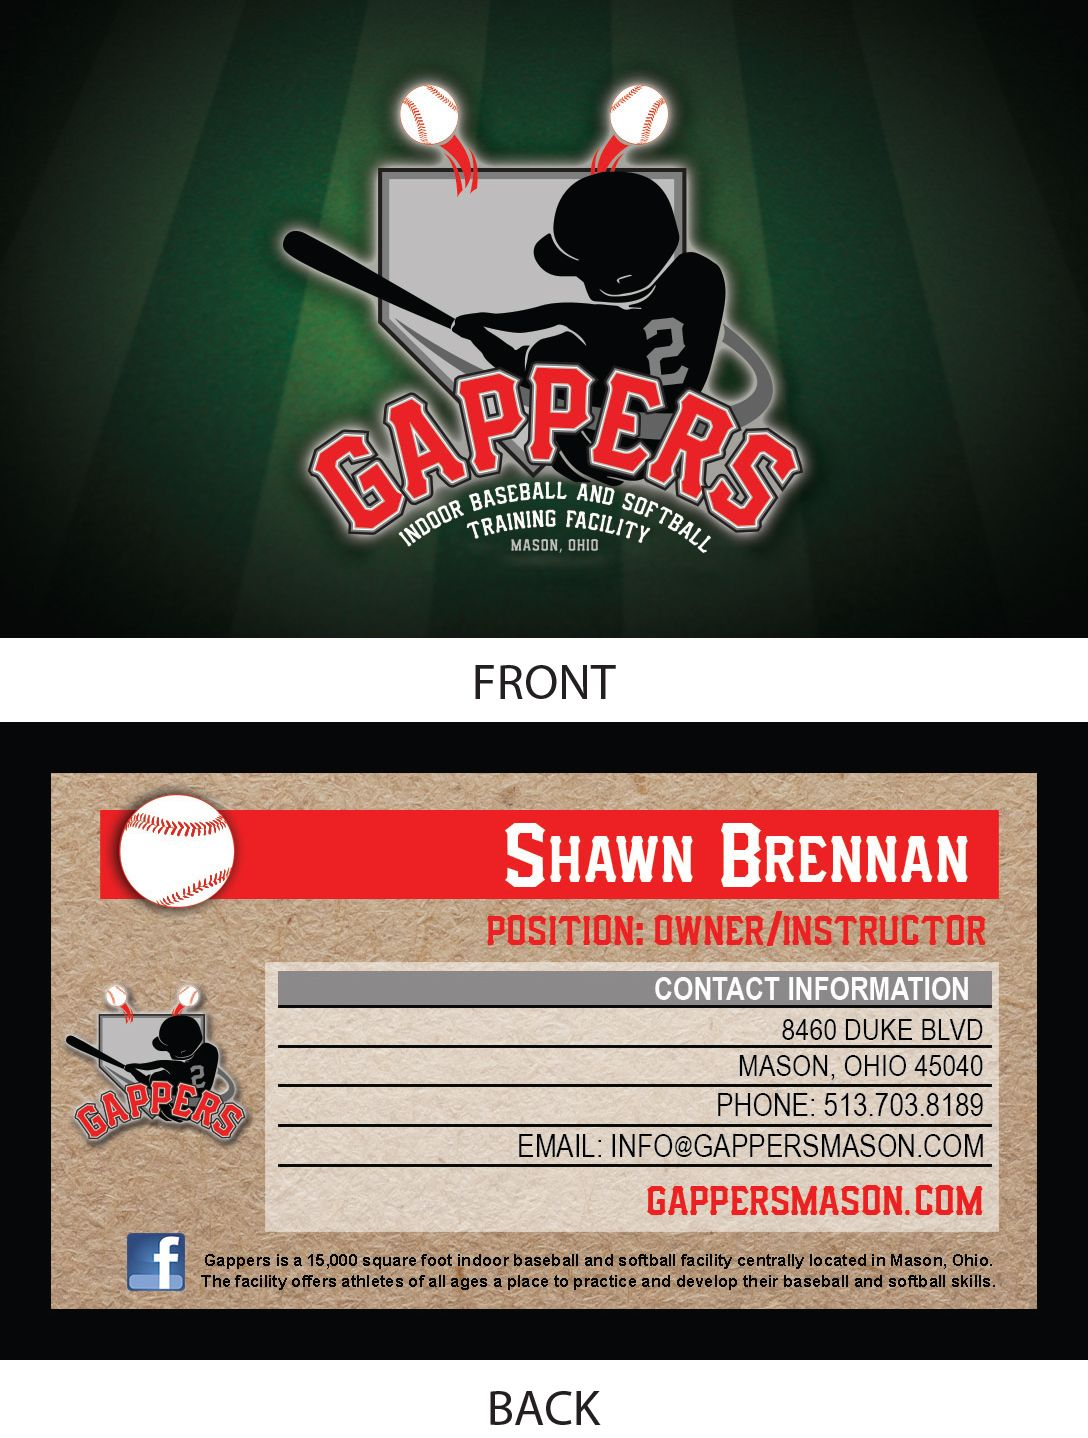 Business Cards This One Was For An Indoor Baseball Training